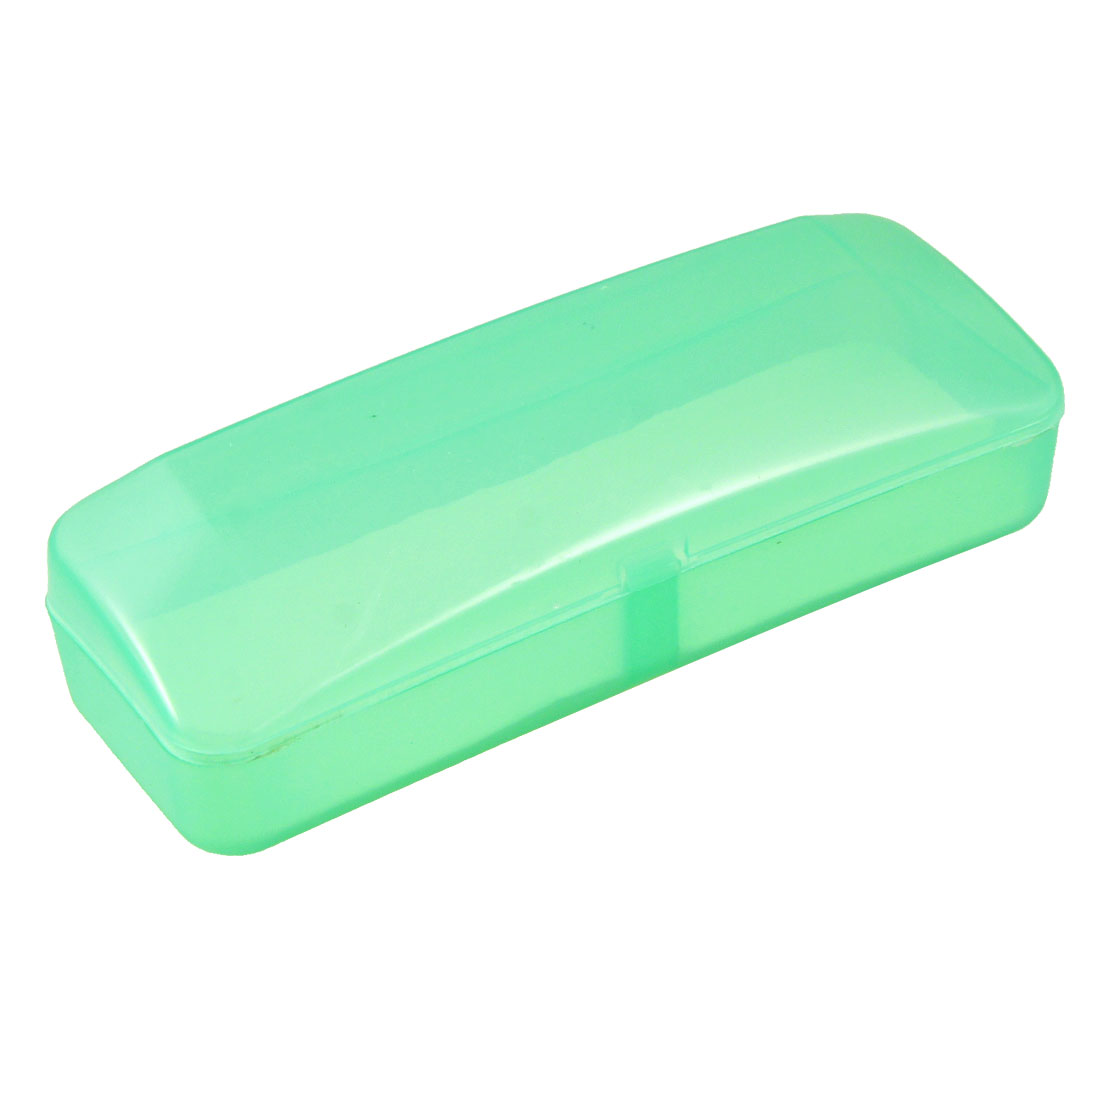 "Plastic Clear Green Rectangular Eyeglasses Case Storage Box 5.9"" Long"